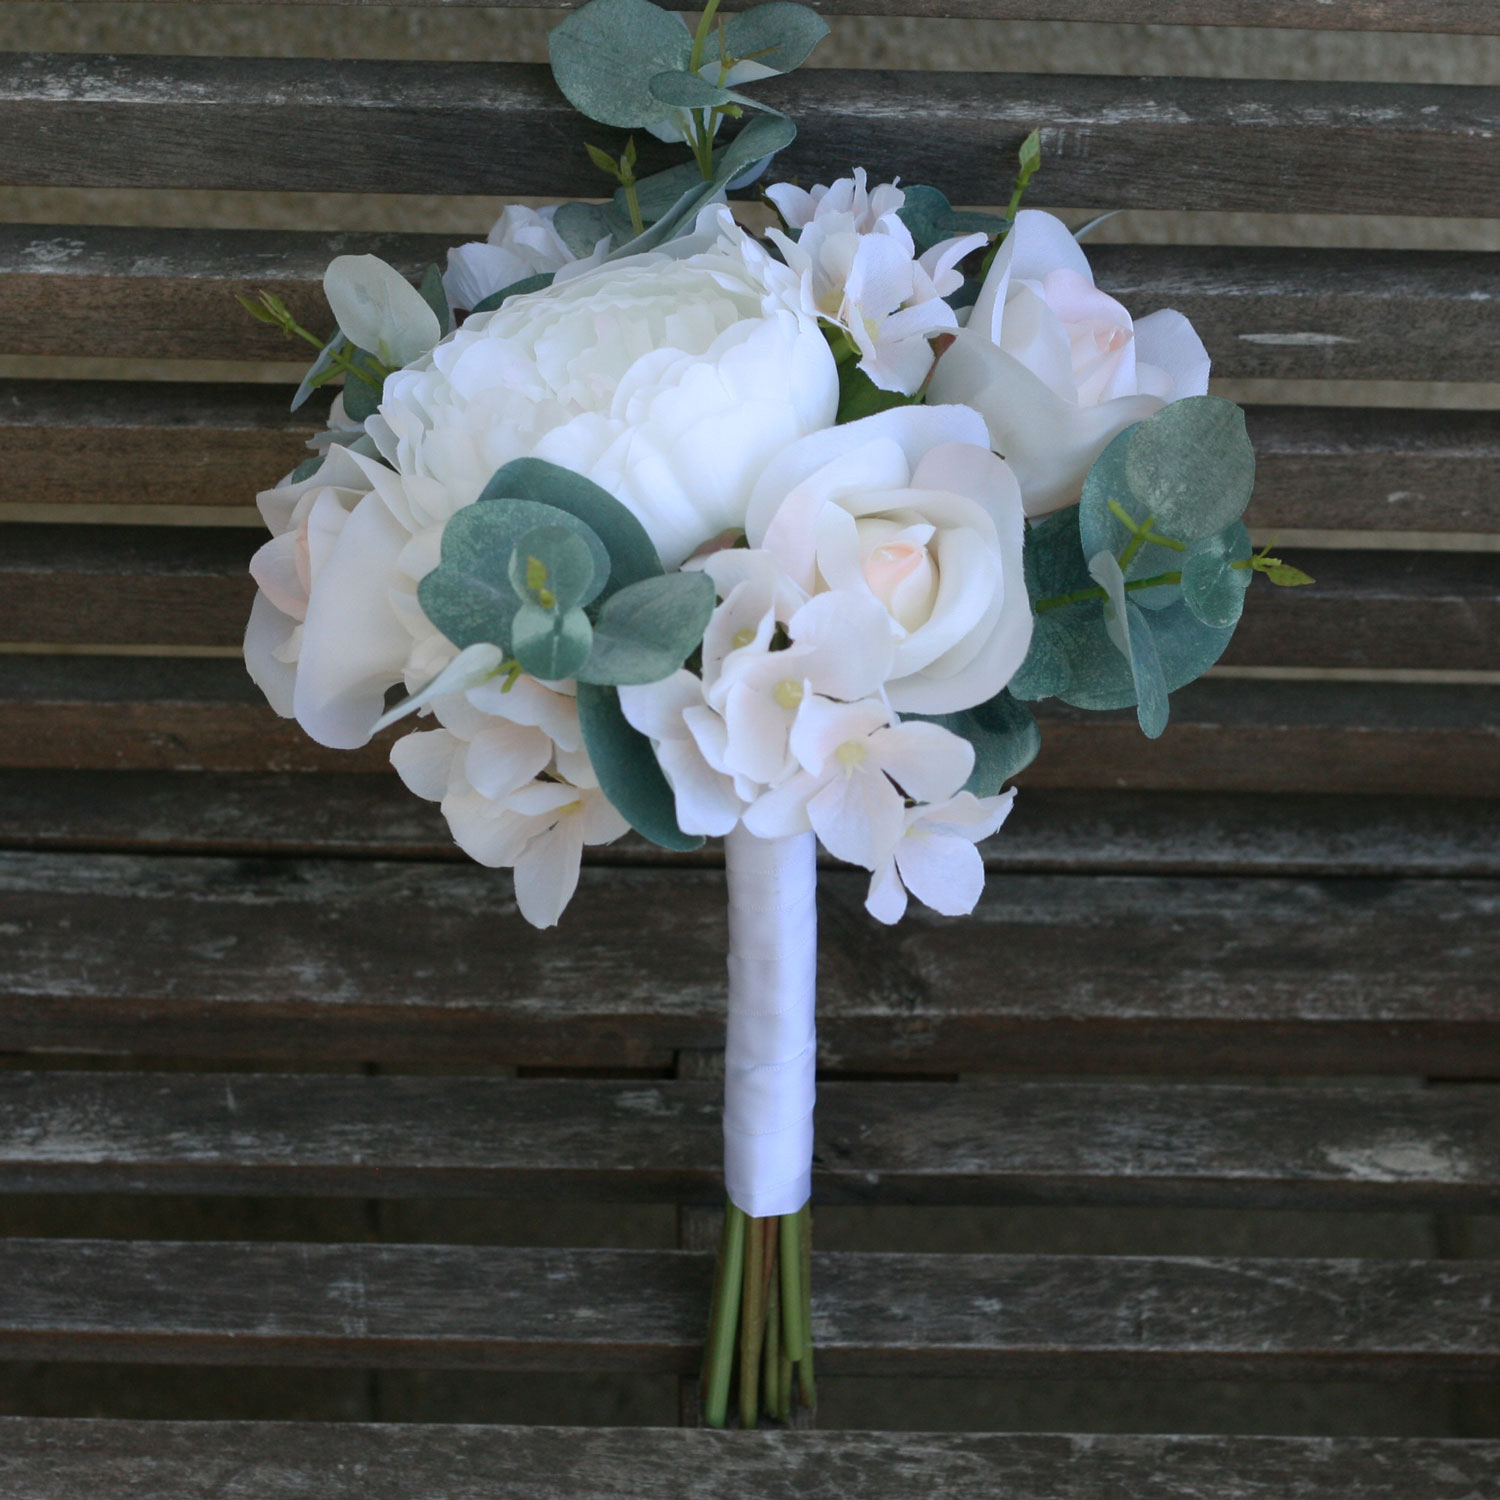 ivory-blush-small-silk-wedding-bouquets-thebridesbouquet4.jpg